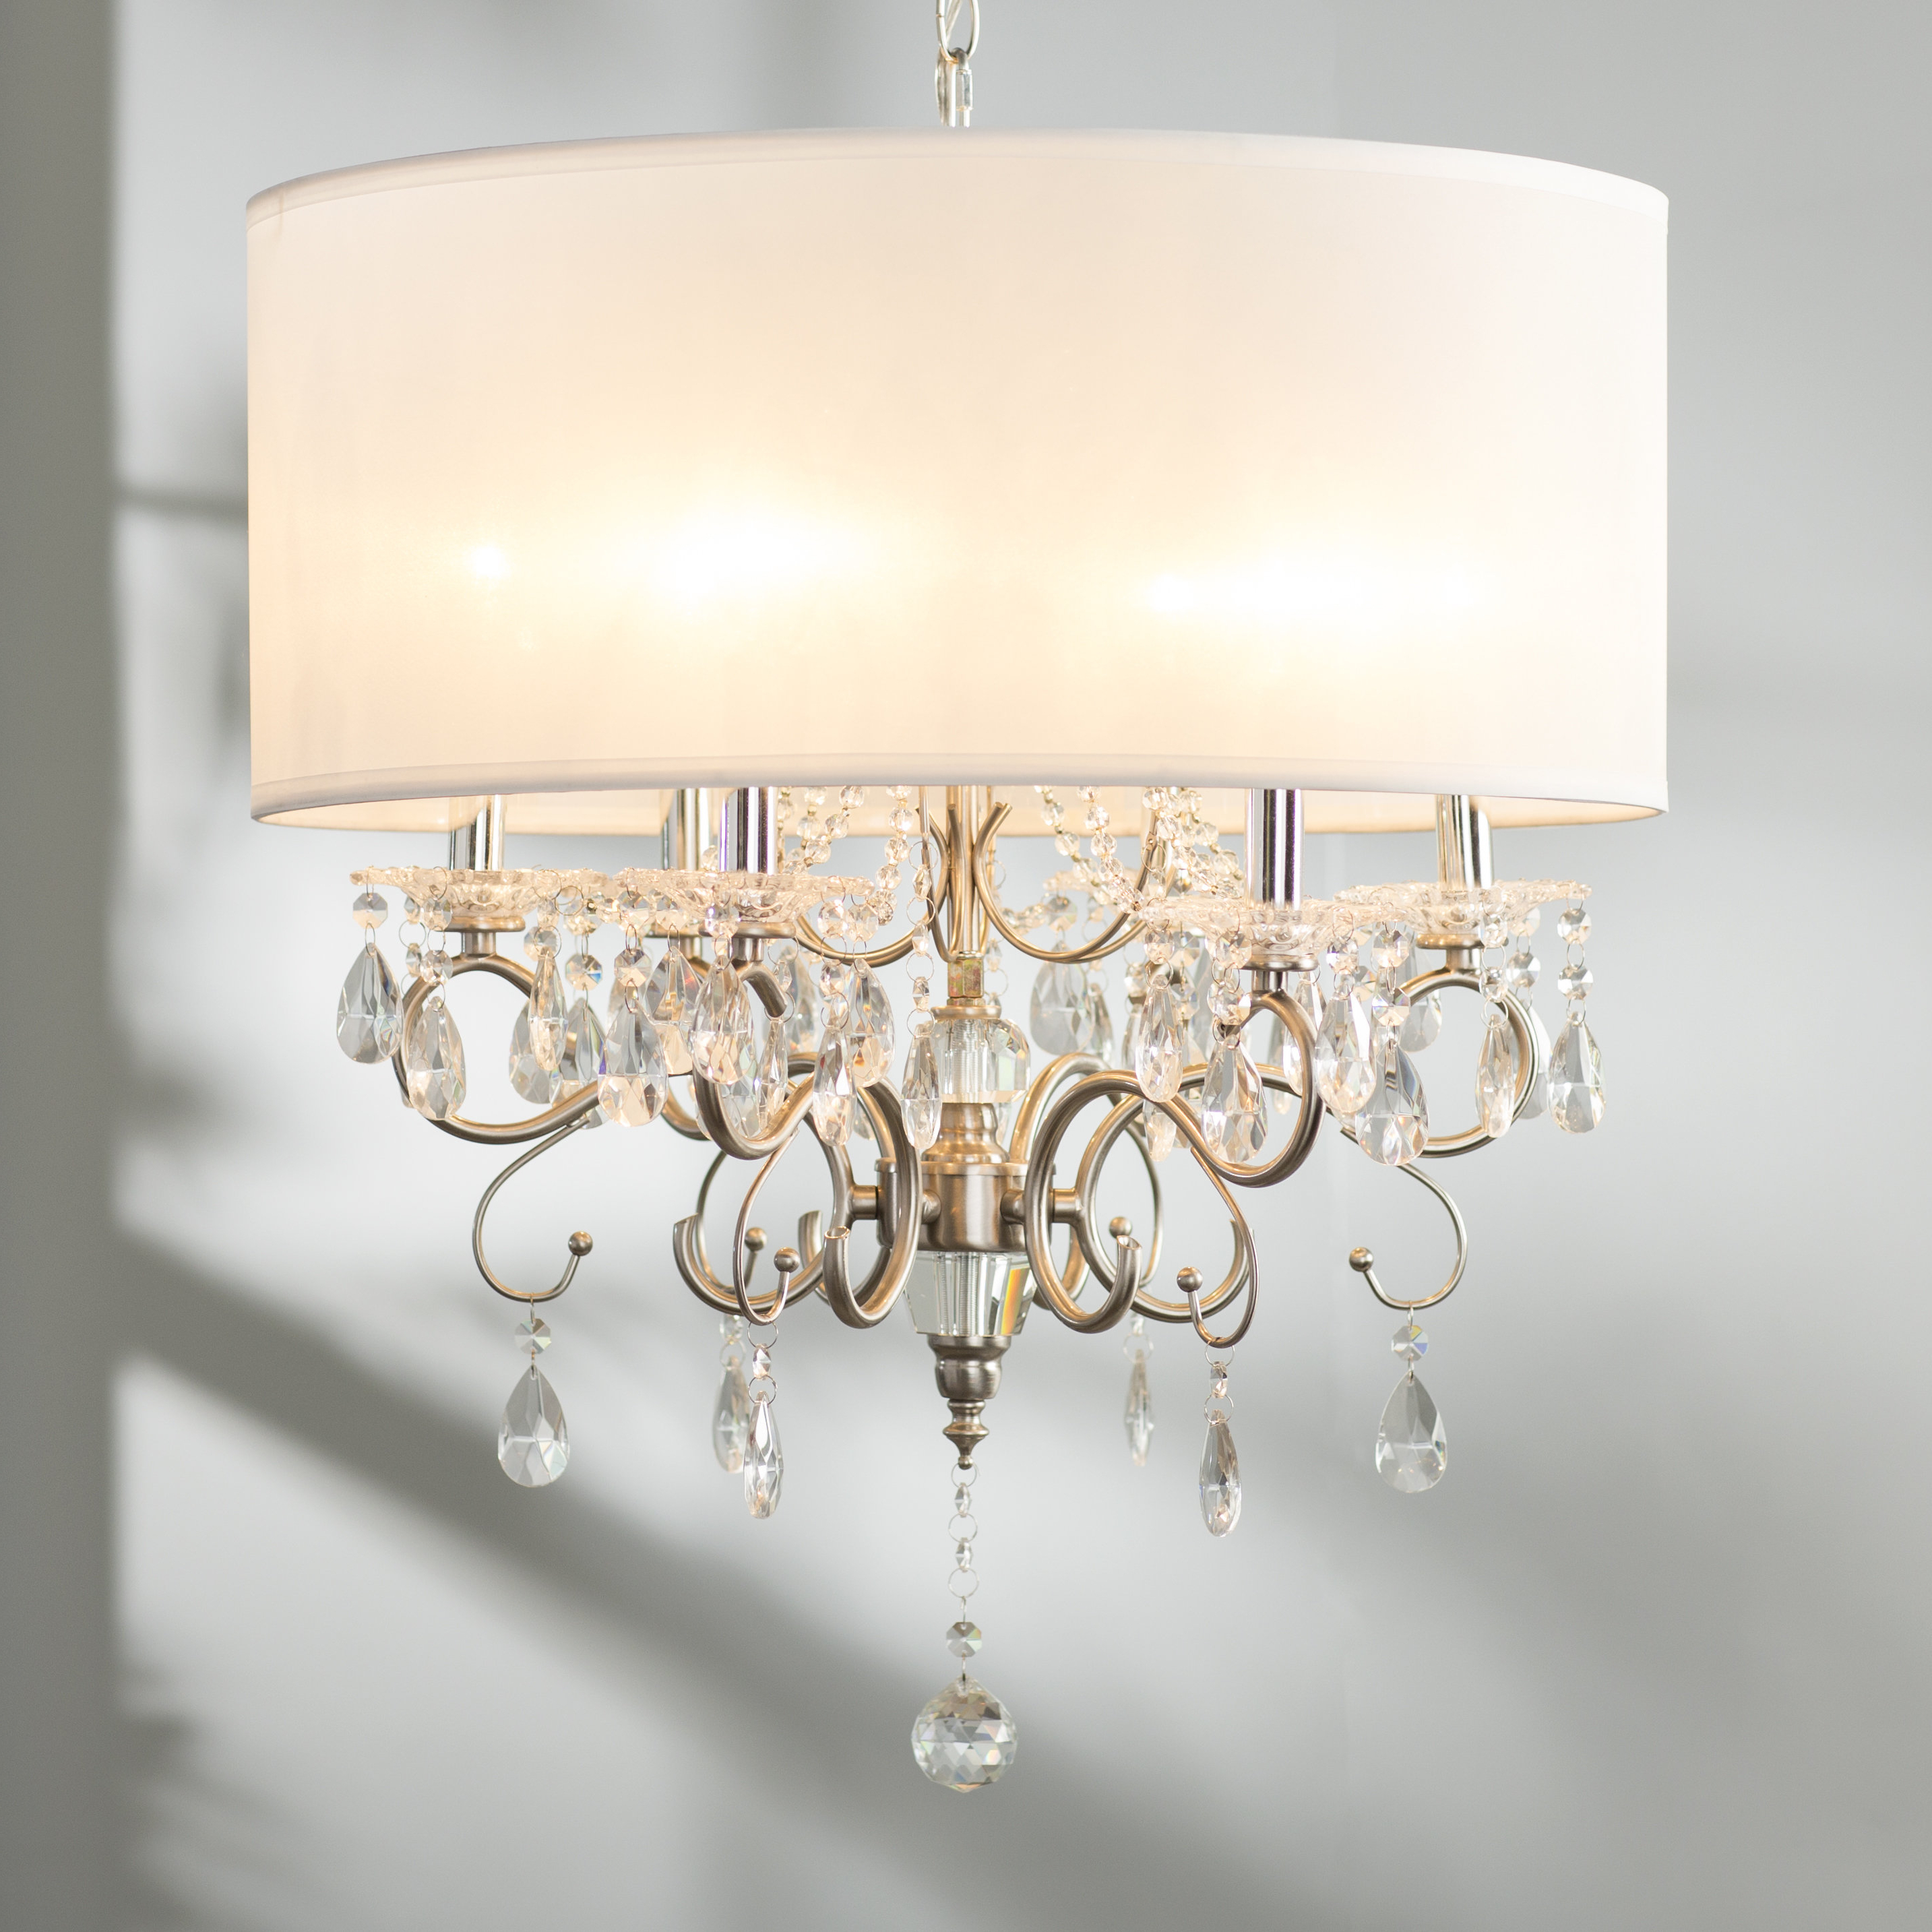 """Widely Used Dailey 4 Light Drum Chandeliers With Drum Large (Between 21"""" – 30"""" Wide) Chandeliers You'll Love (Gallery 18 of 20)"""